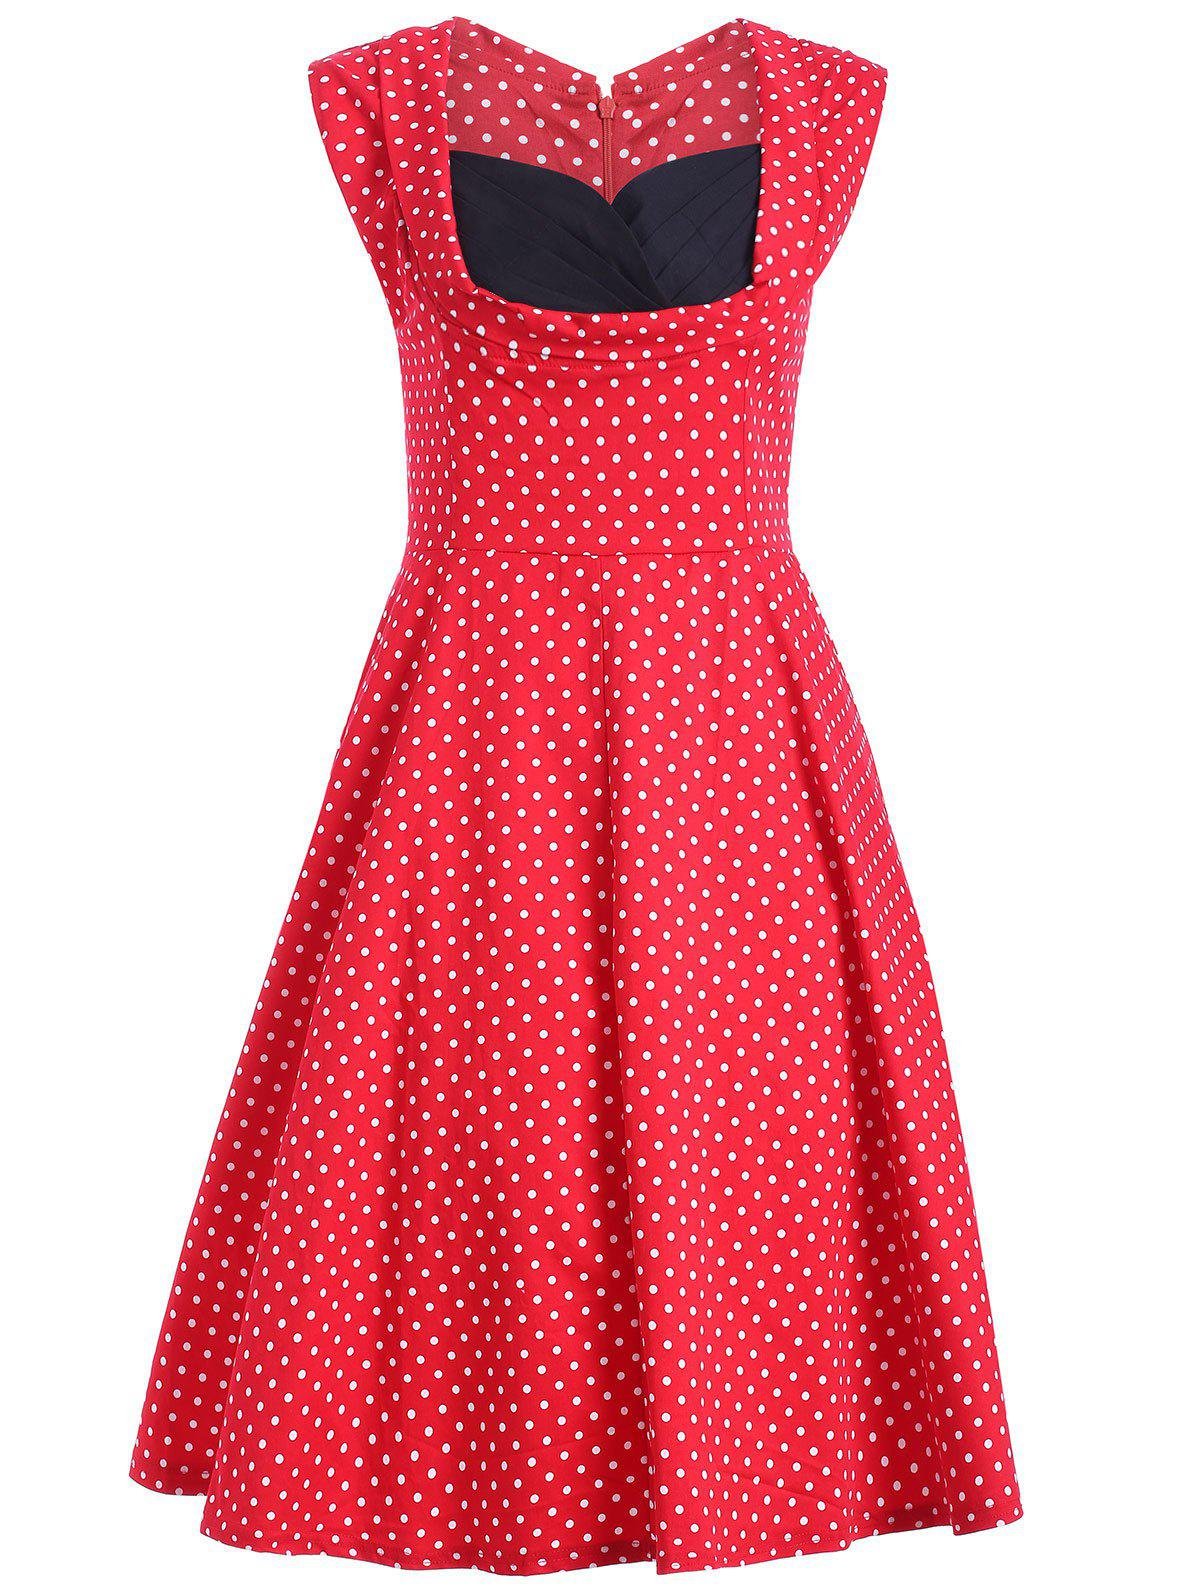 Sweetheart Neck Swiss Dot Dress - RED 2XL